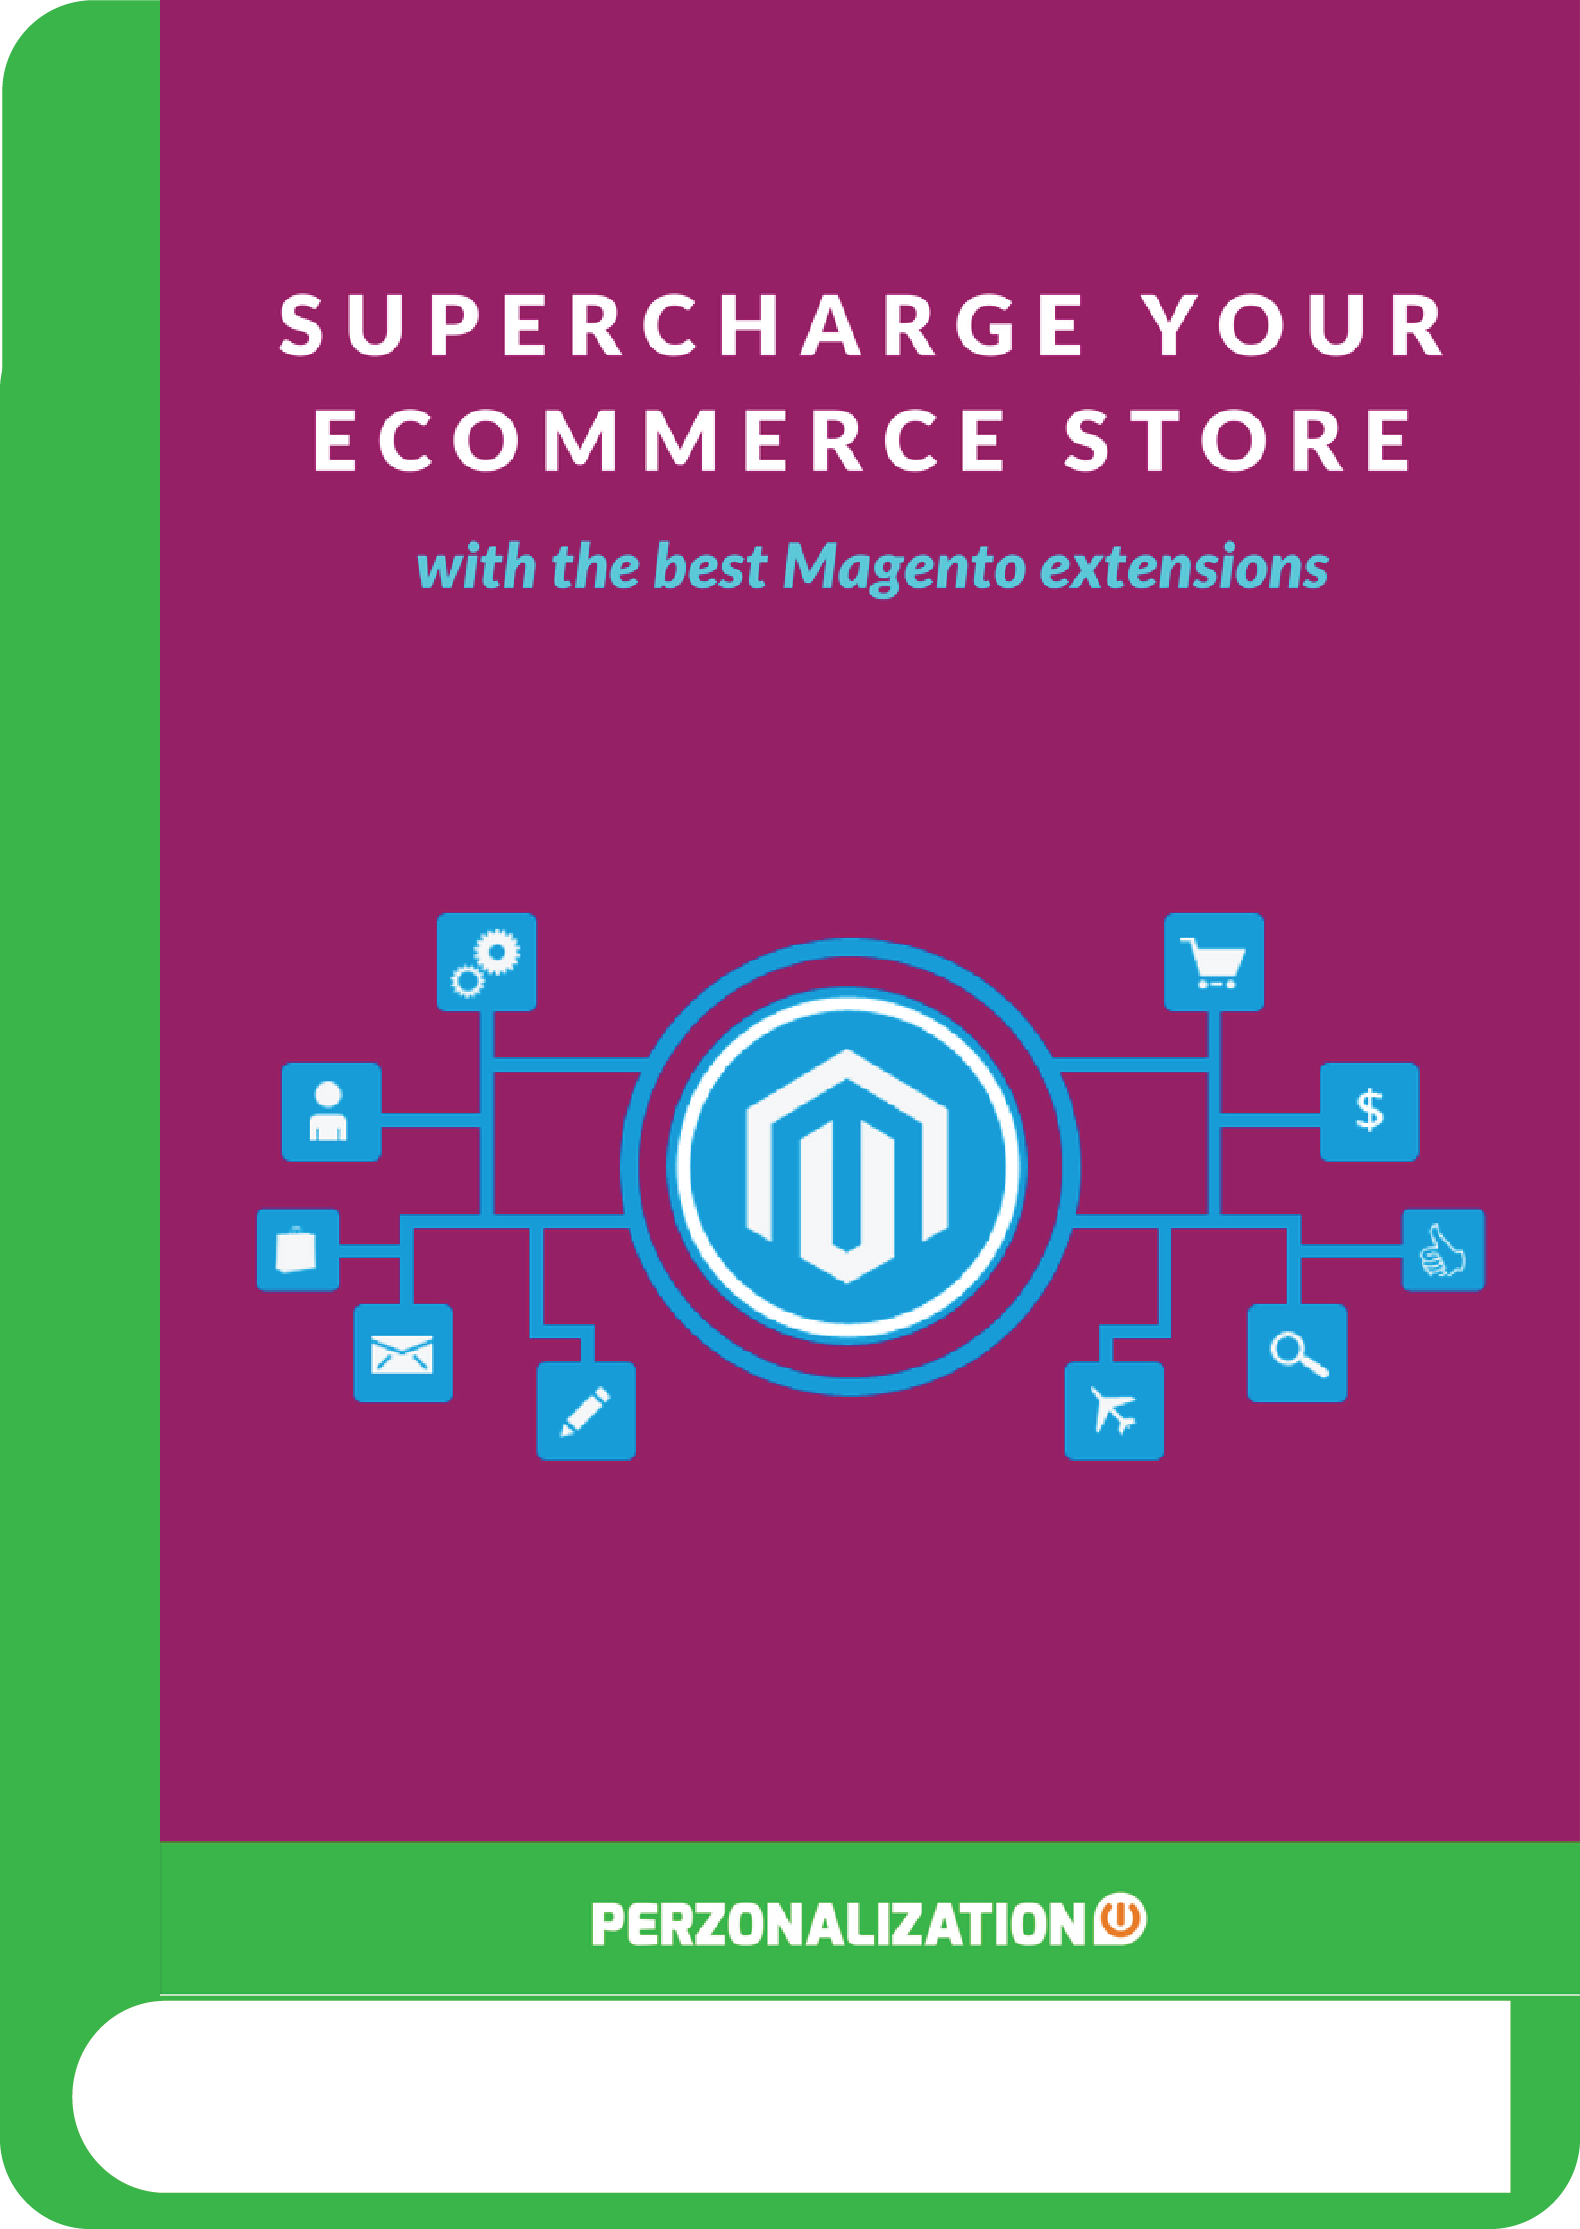 There are several great extensions for Magento that can be easily used for best results. Here, you will get to know about the best Magento extensions.